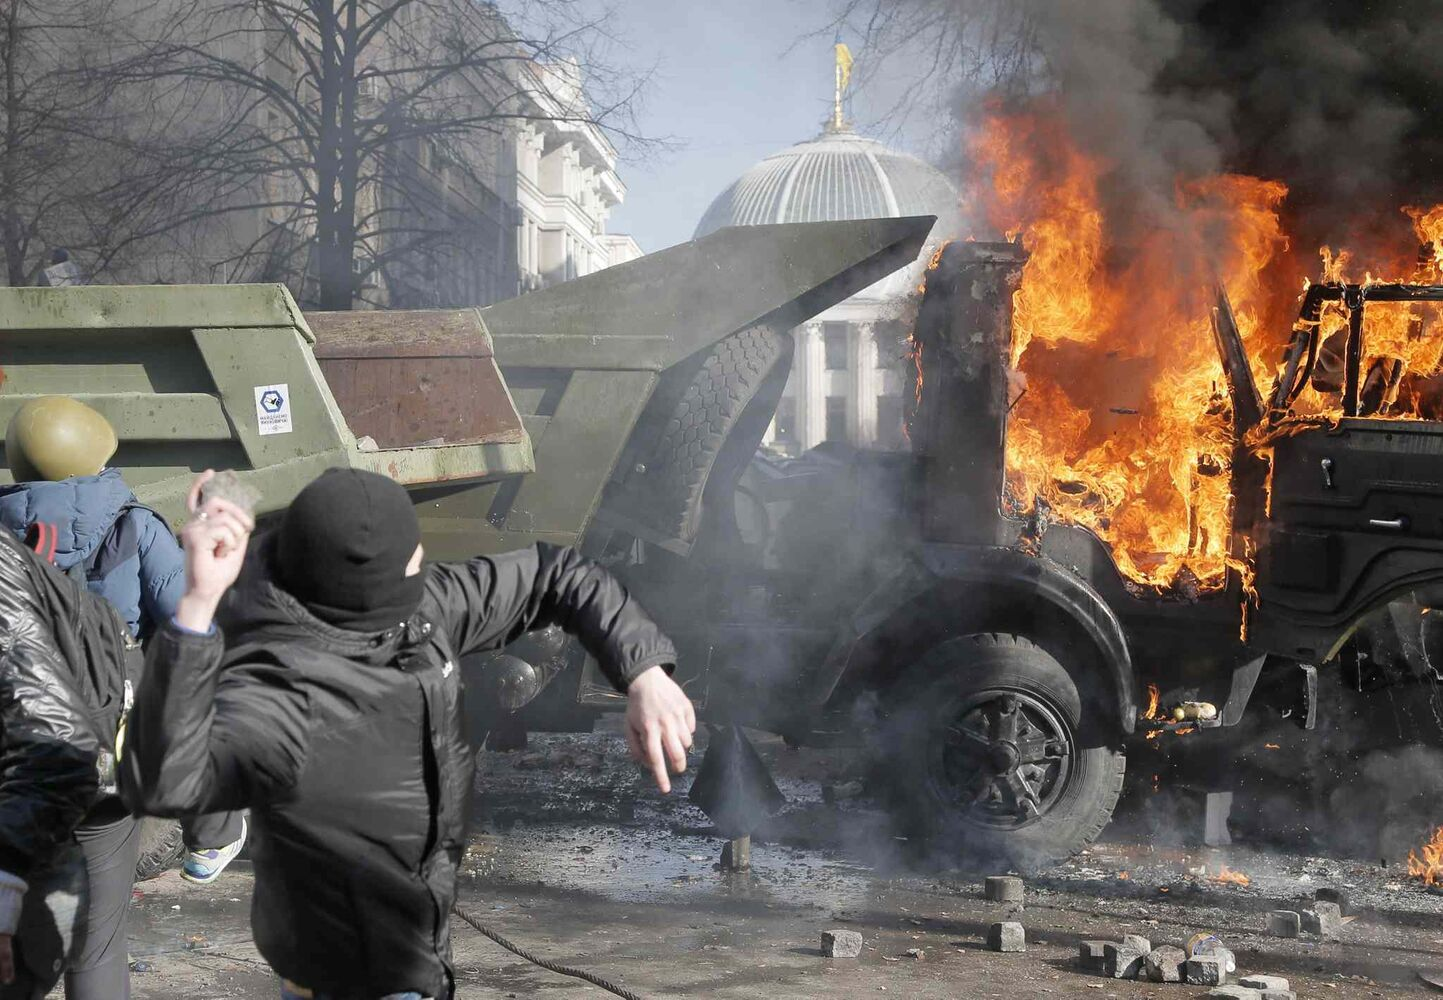 Anti-government protesters clash with riot police outside Ukraine's parliament in Kyiv as protests erupt in flames Tuesday. (Efrem Lukatsky / The Associated Press)